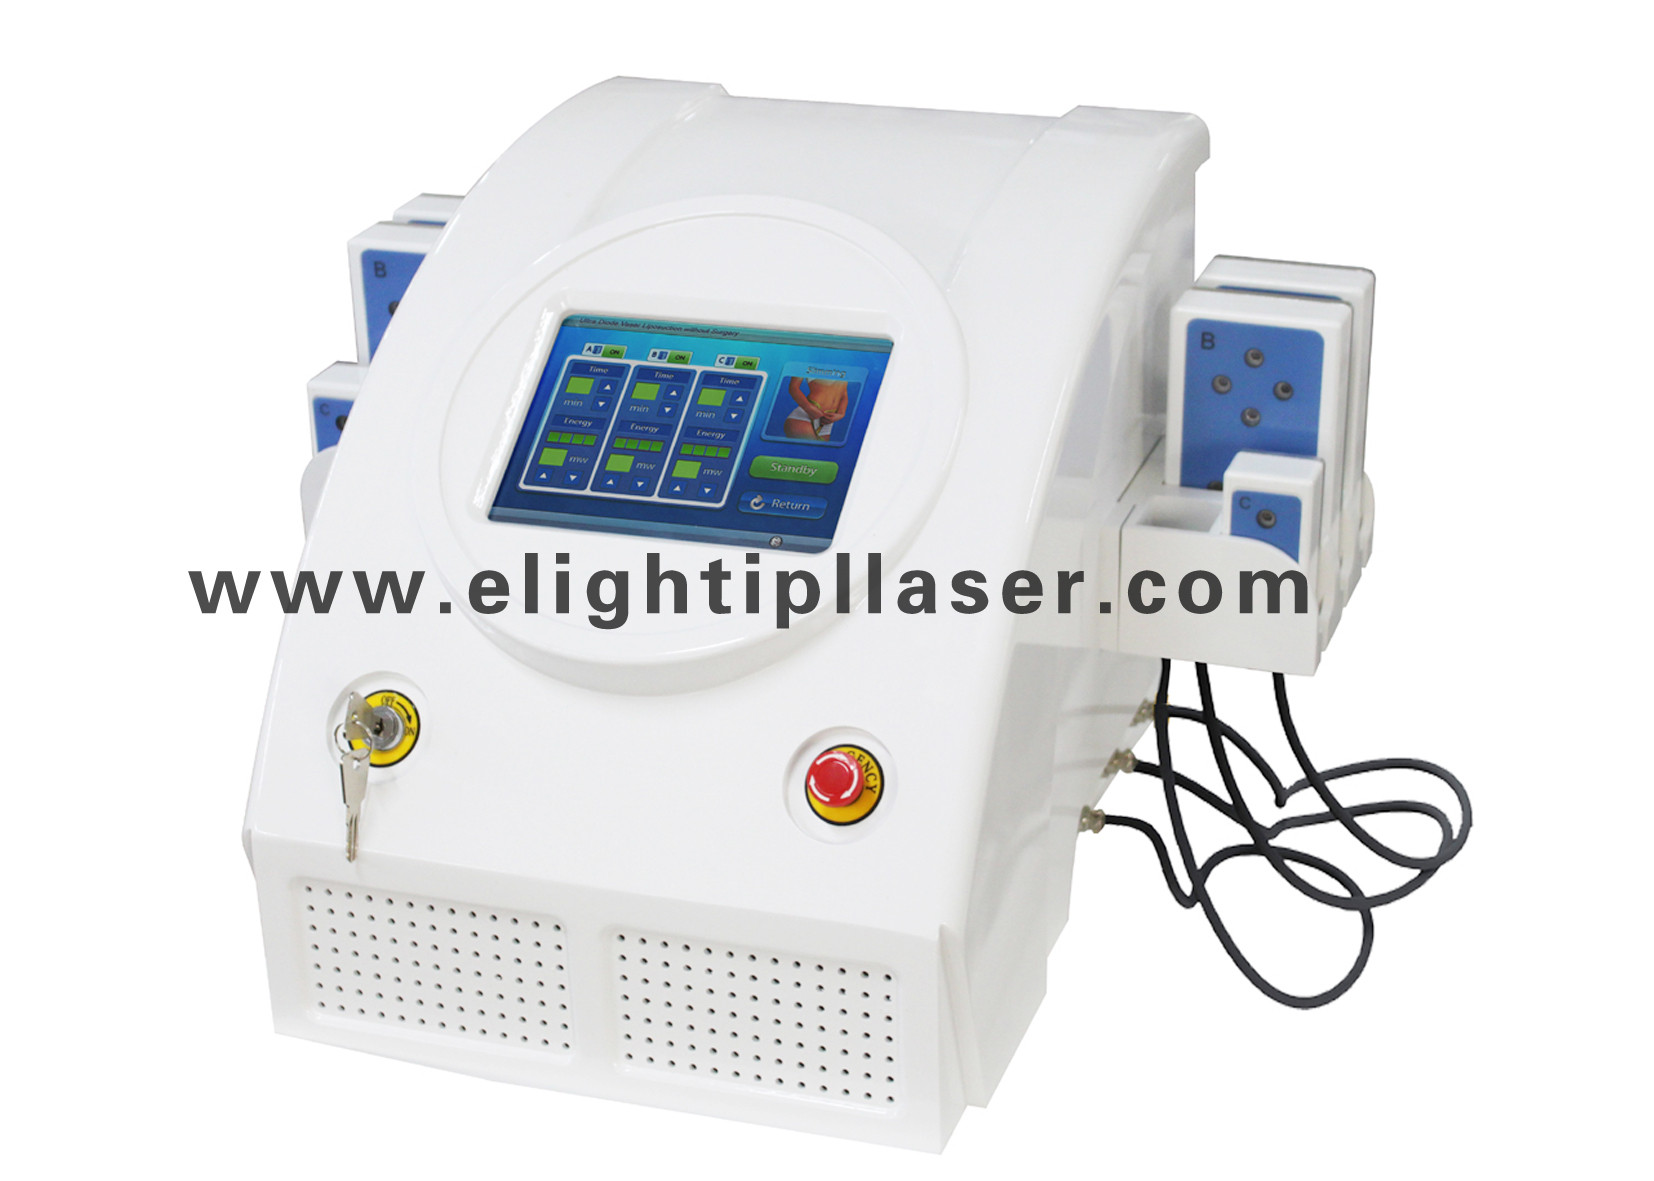 Non Invasive Lipo Laser Slimming Machine For Fat Reduction Non Surgical